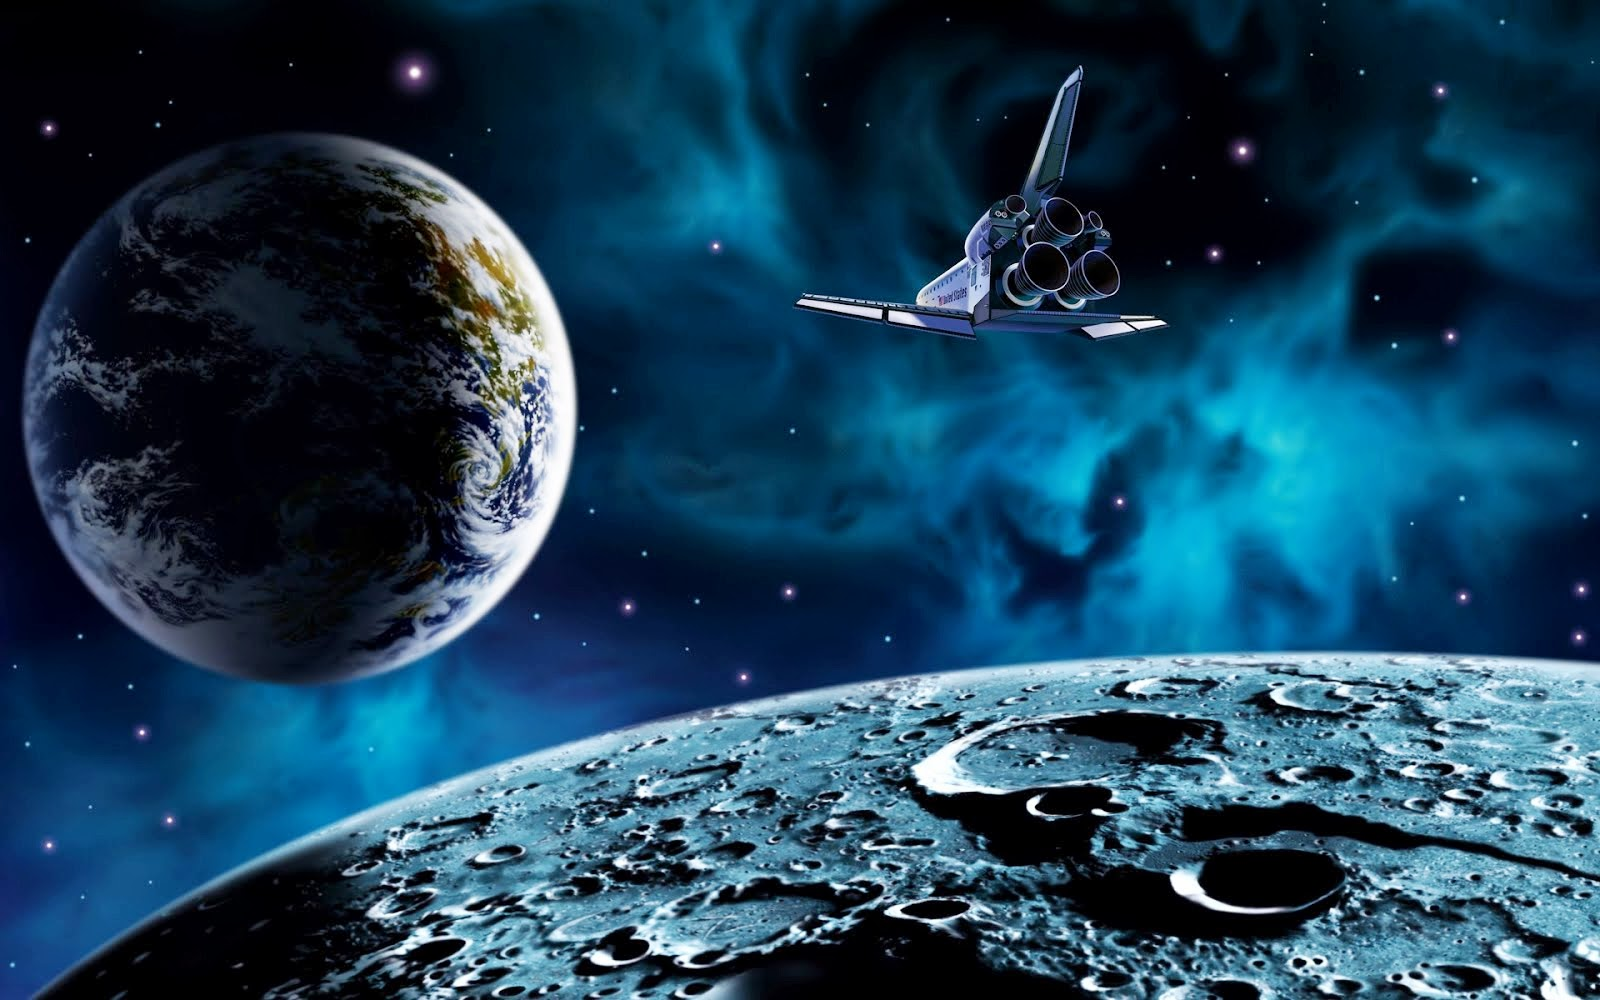 Space art wallpaper space wallpaper - Space wallpaper desktop ...